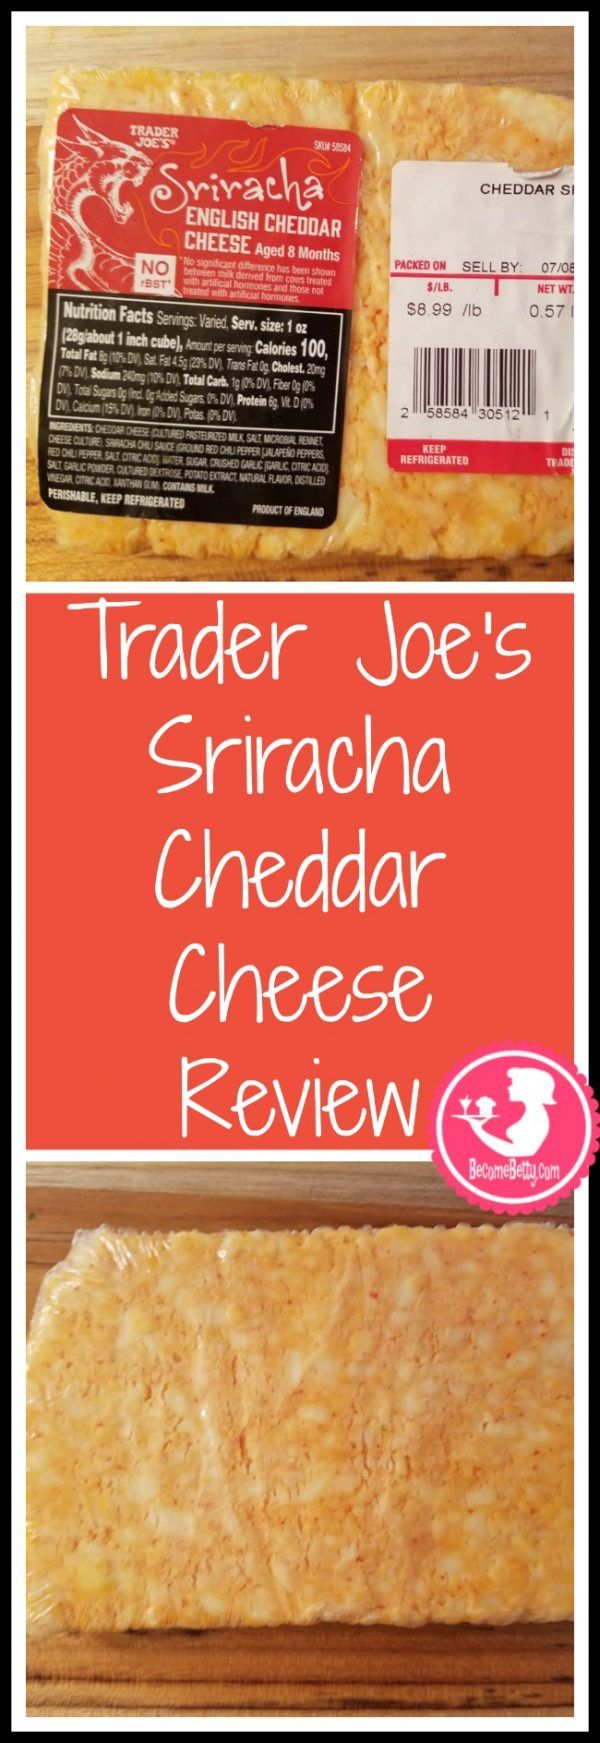 Trader Joe's Sriracha English Cheddar Cheese review. Want to know if this is something worth putting on your shopping list from Trader Joe's? All pins link to BecomeBetty.com where you can find reviews, pictures, thoughts, calorie counts, nutritional information, how to prepare, allergy information, price, and how to prepare each product.